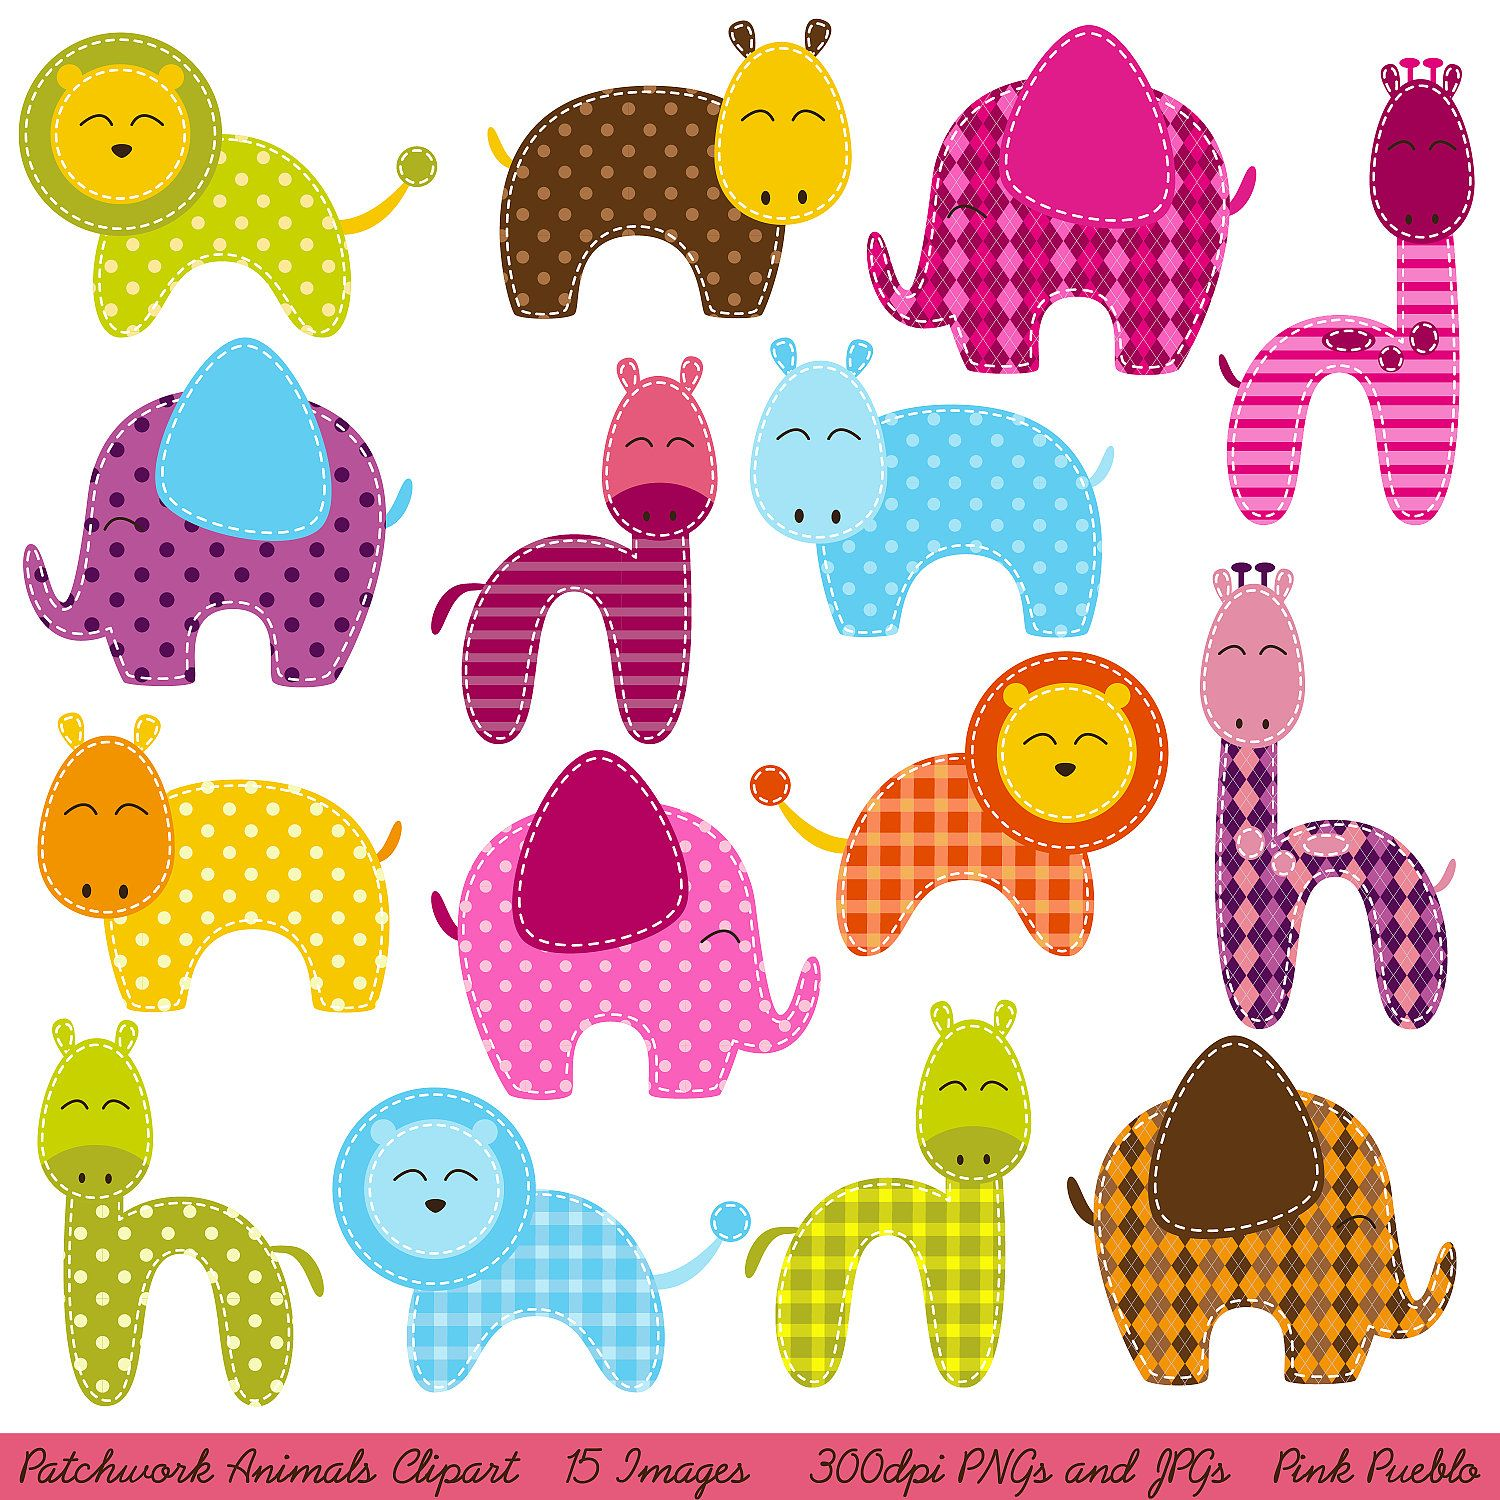 Zoo animal scrapbook ideas - Patchwork Animals Clipart Clip Art Zoo Animals Jungle Animals Clipart Clip Art Commercial And Personal Use